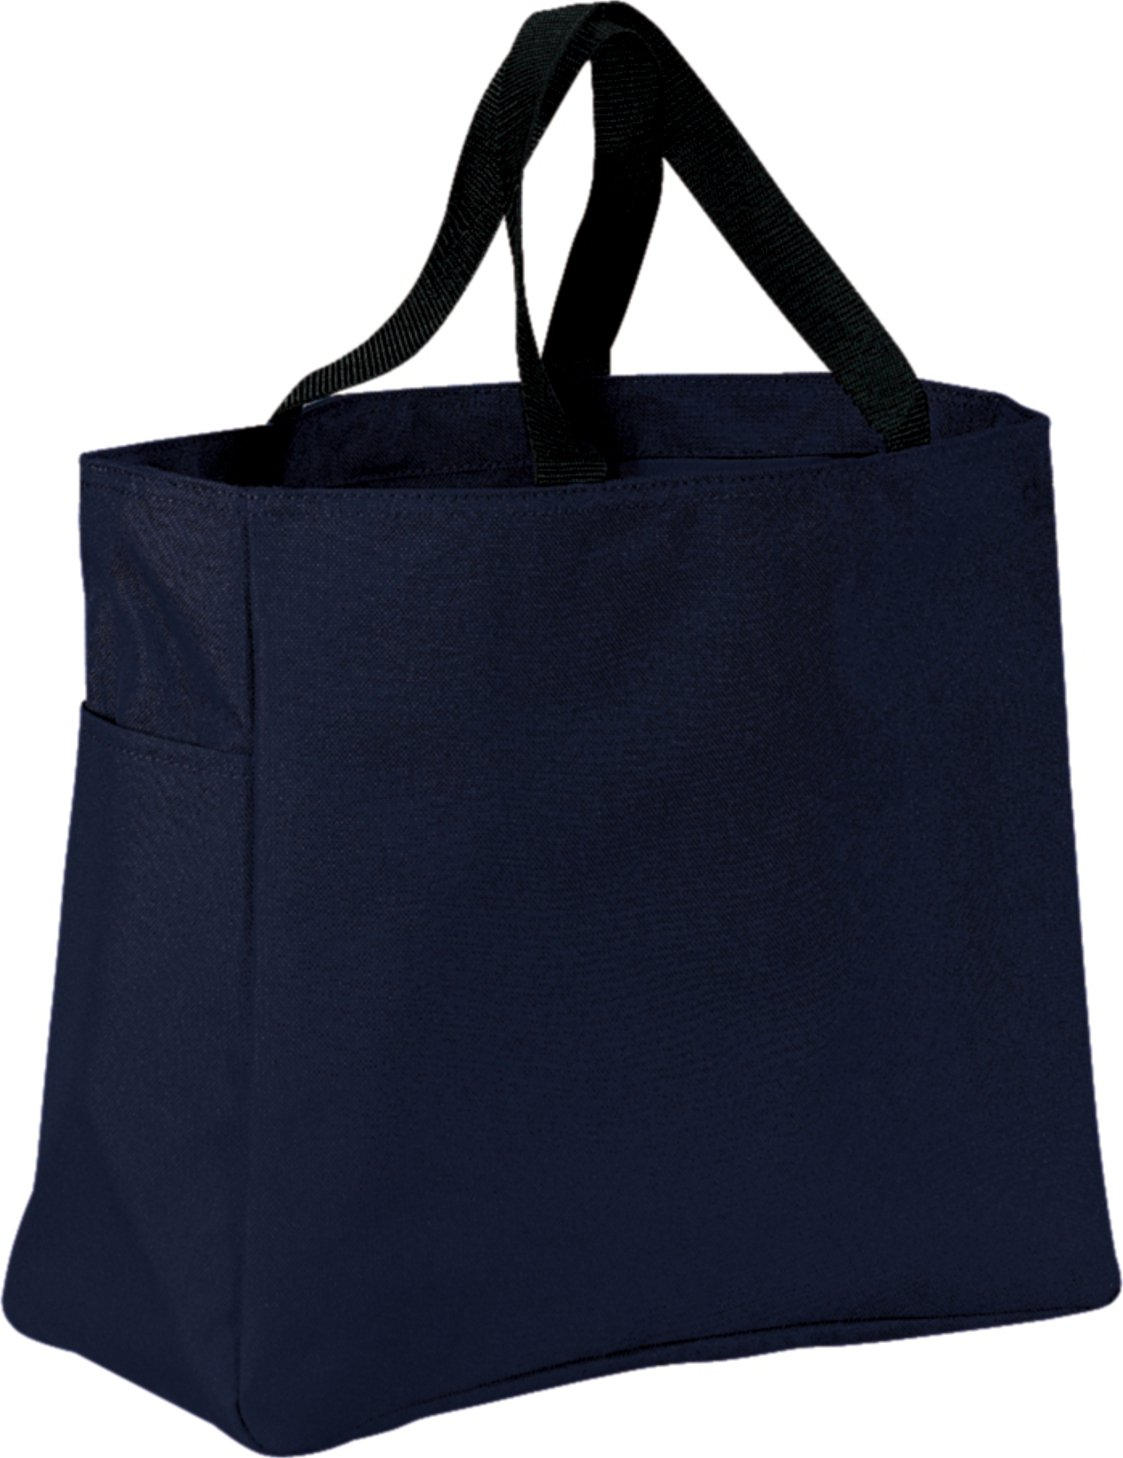 Port & Company luggage-and-bags Improved Essential Tote B0750